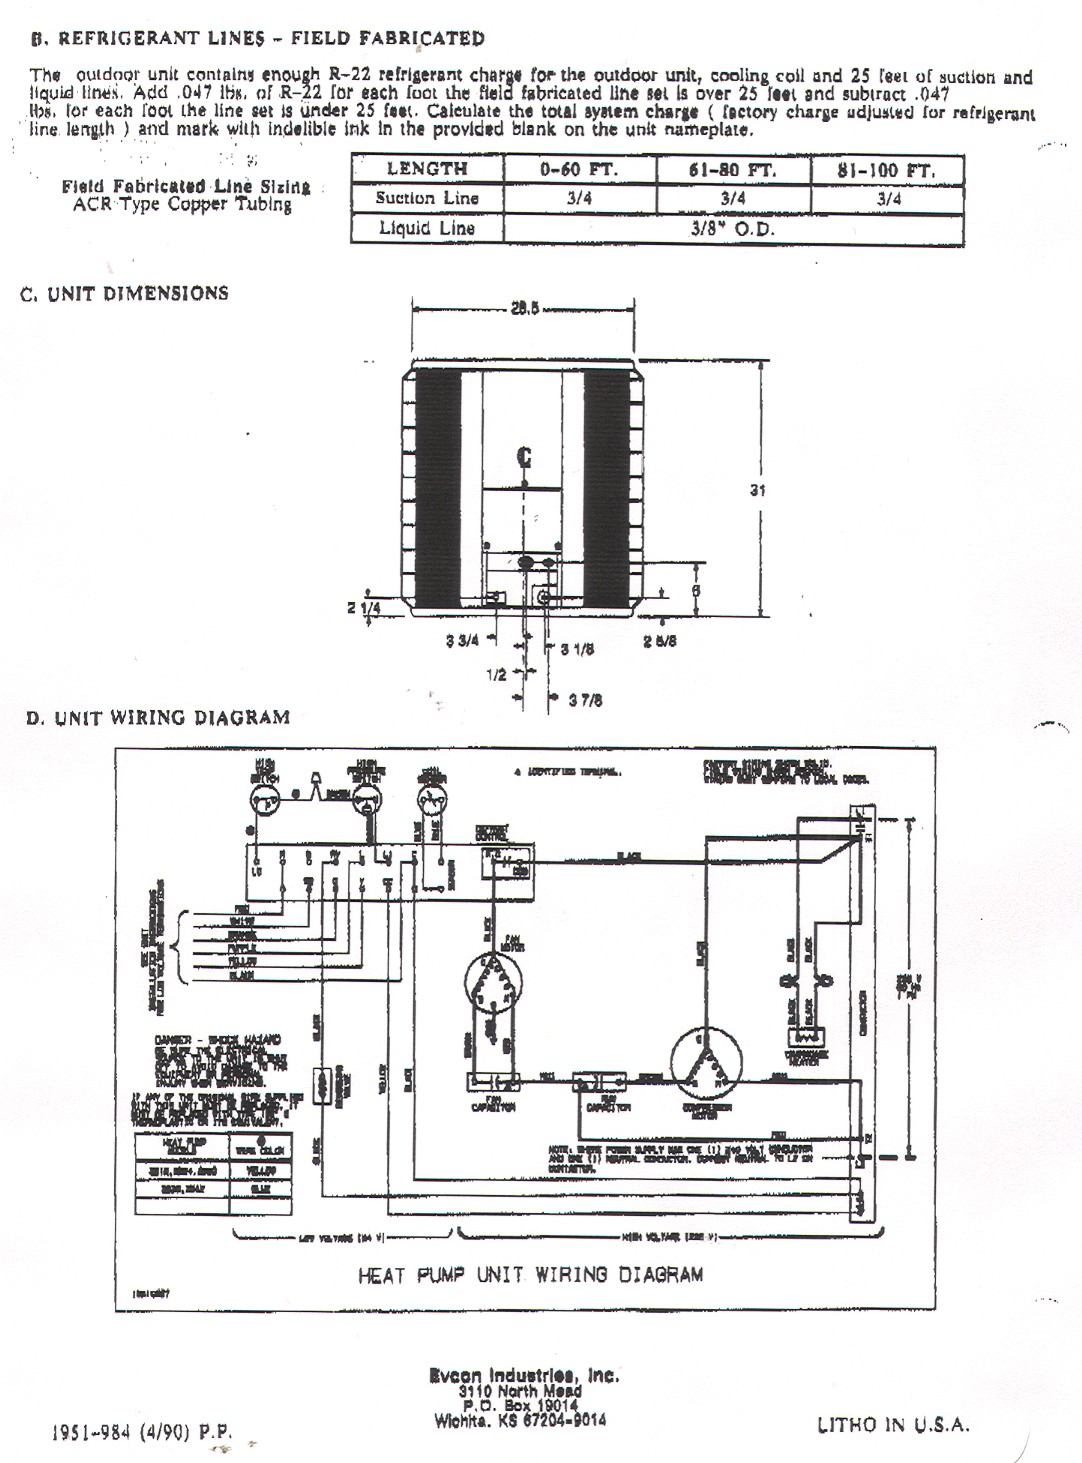 heil heat pump wiring diagram Collection-York Heat Pump Wiring Diagram 8-r.  DOWNLOAD. Wiring Diagram ...